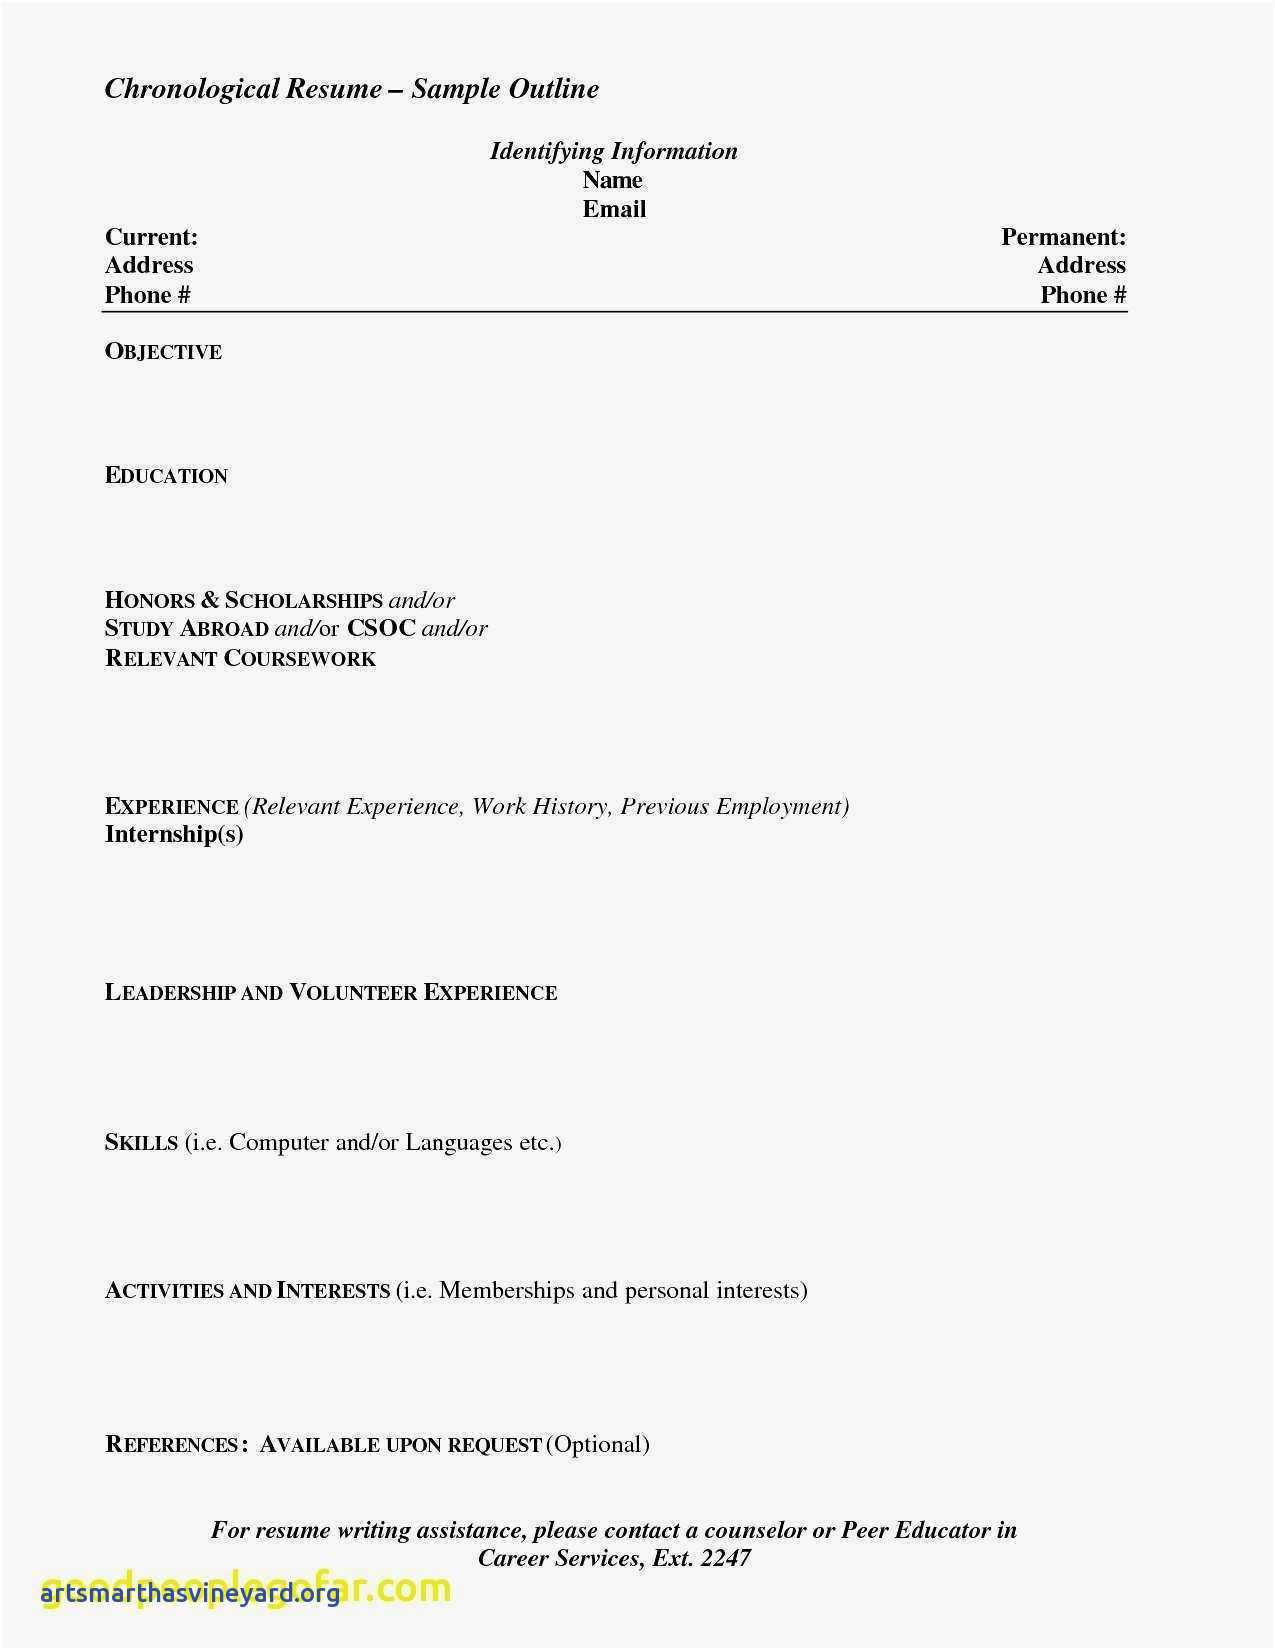 Teenage Resume Template - What Should Be A Resume for A Teenager Valid Unique Resume for